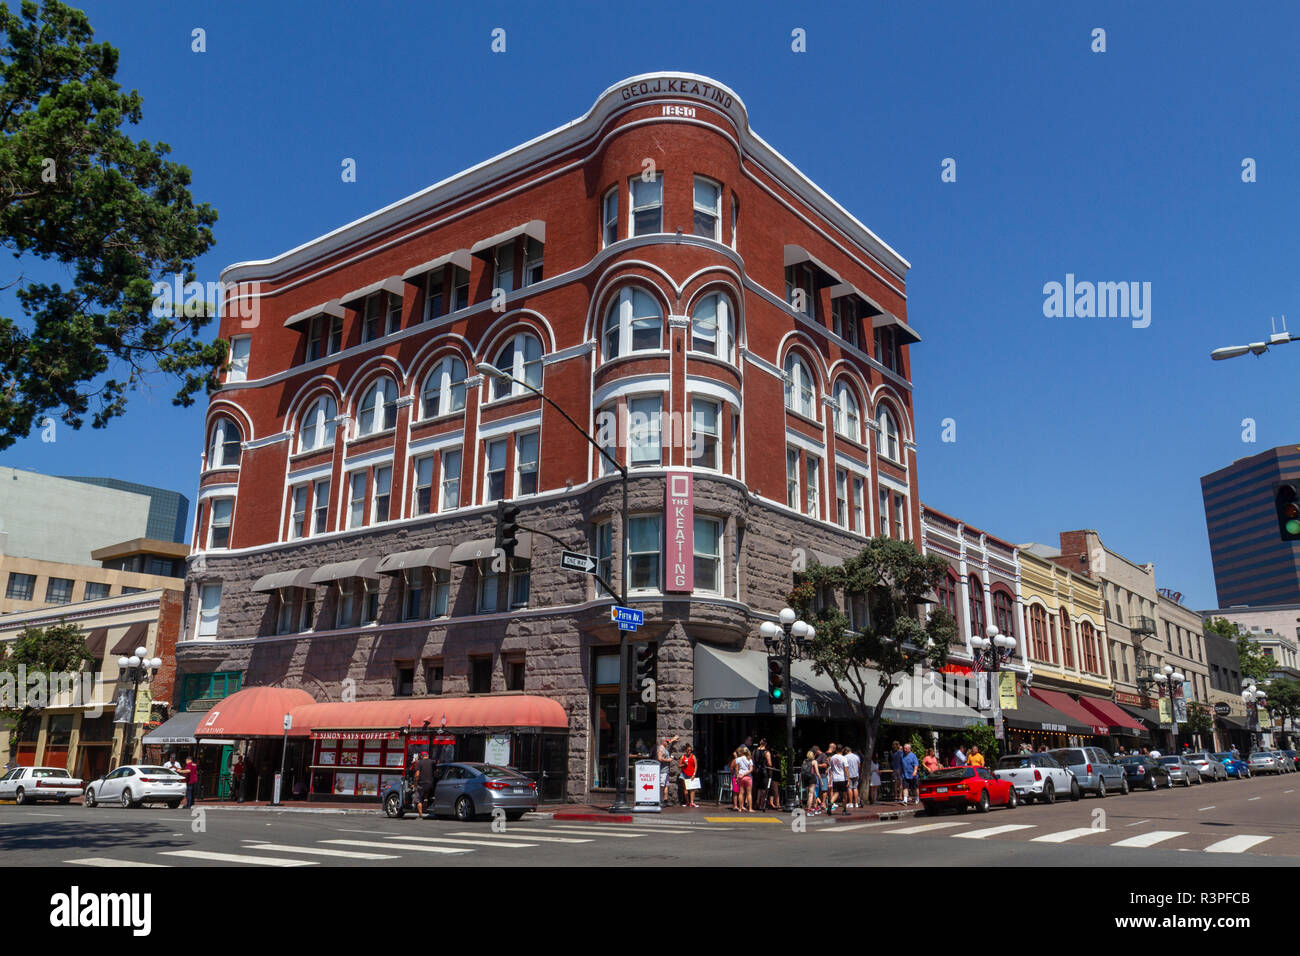 The George J. Keating Building, in the Romanesque Revival style, Gaslamp Quarter, San Diego, California, United States, - Stock Image